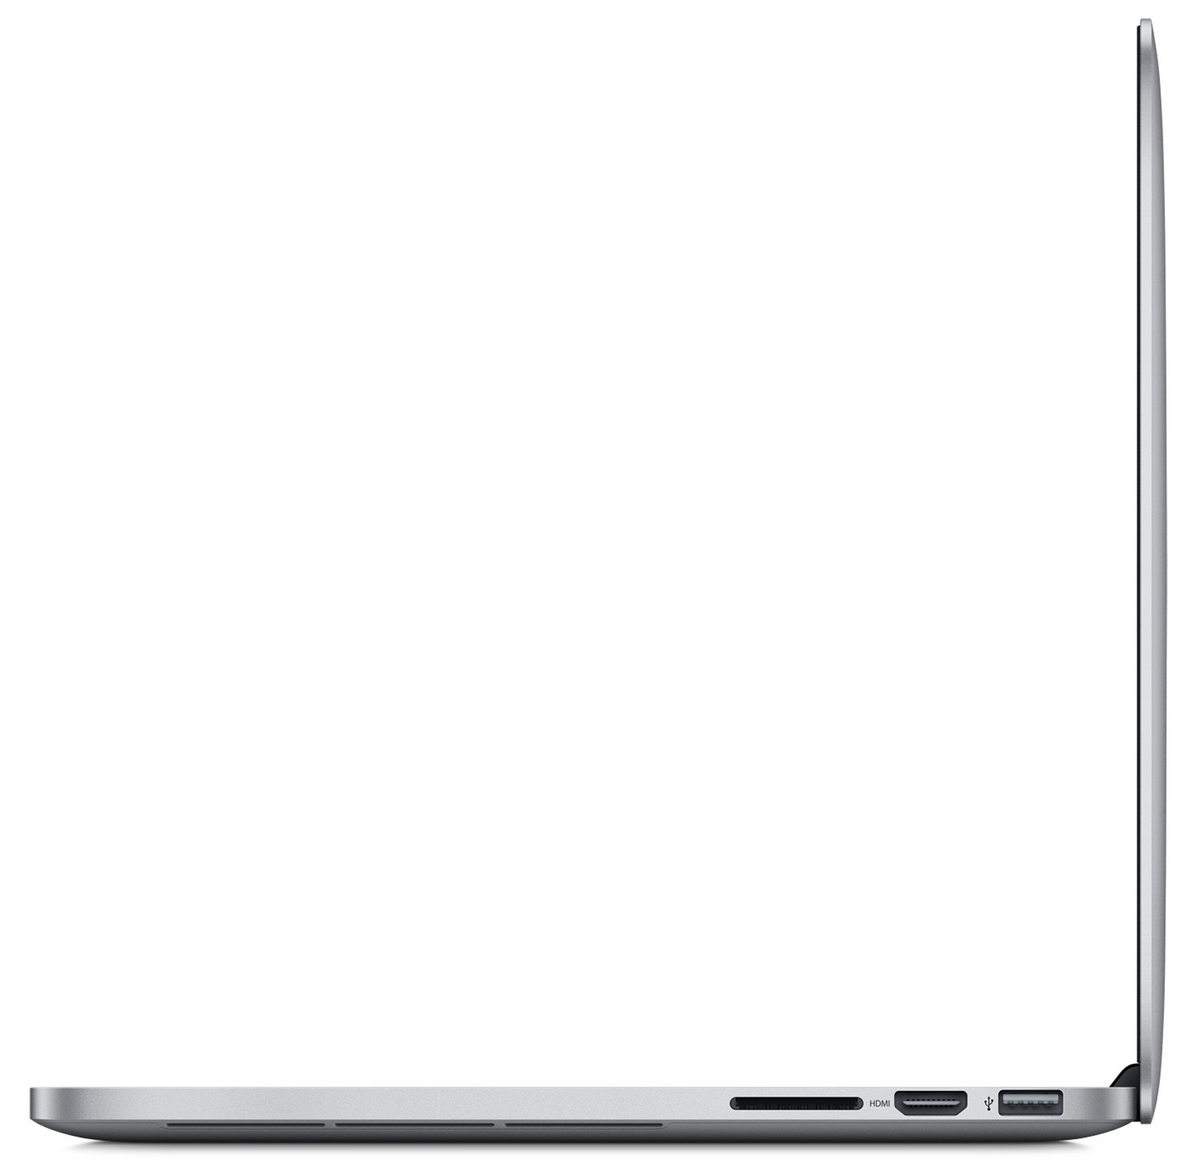 13in MacBook Pro 2015 review